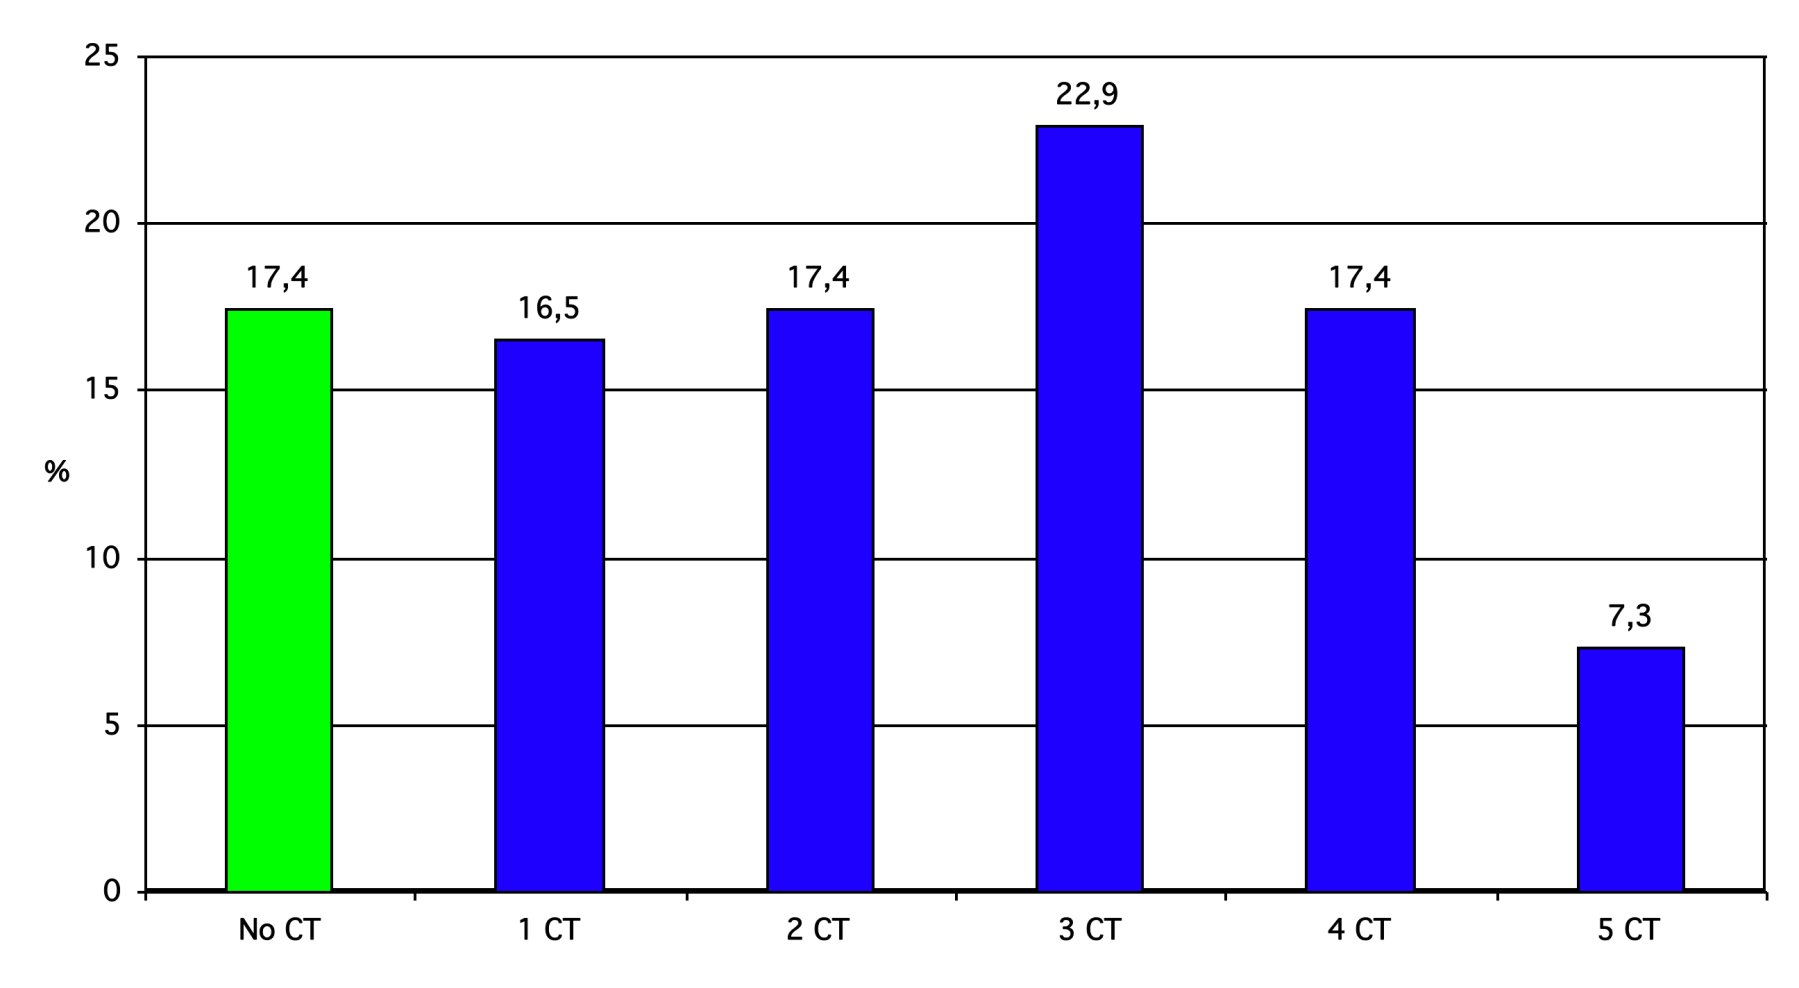 Numbers of CT in prison